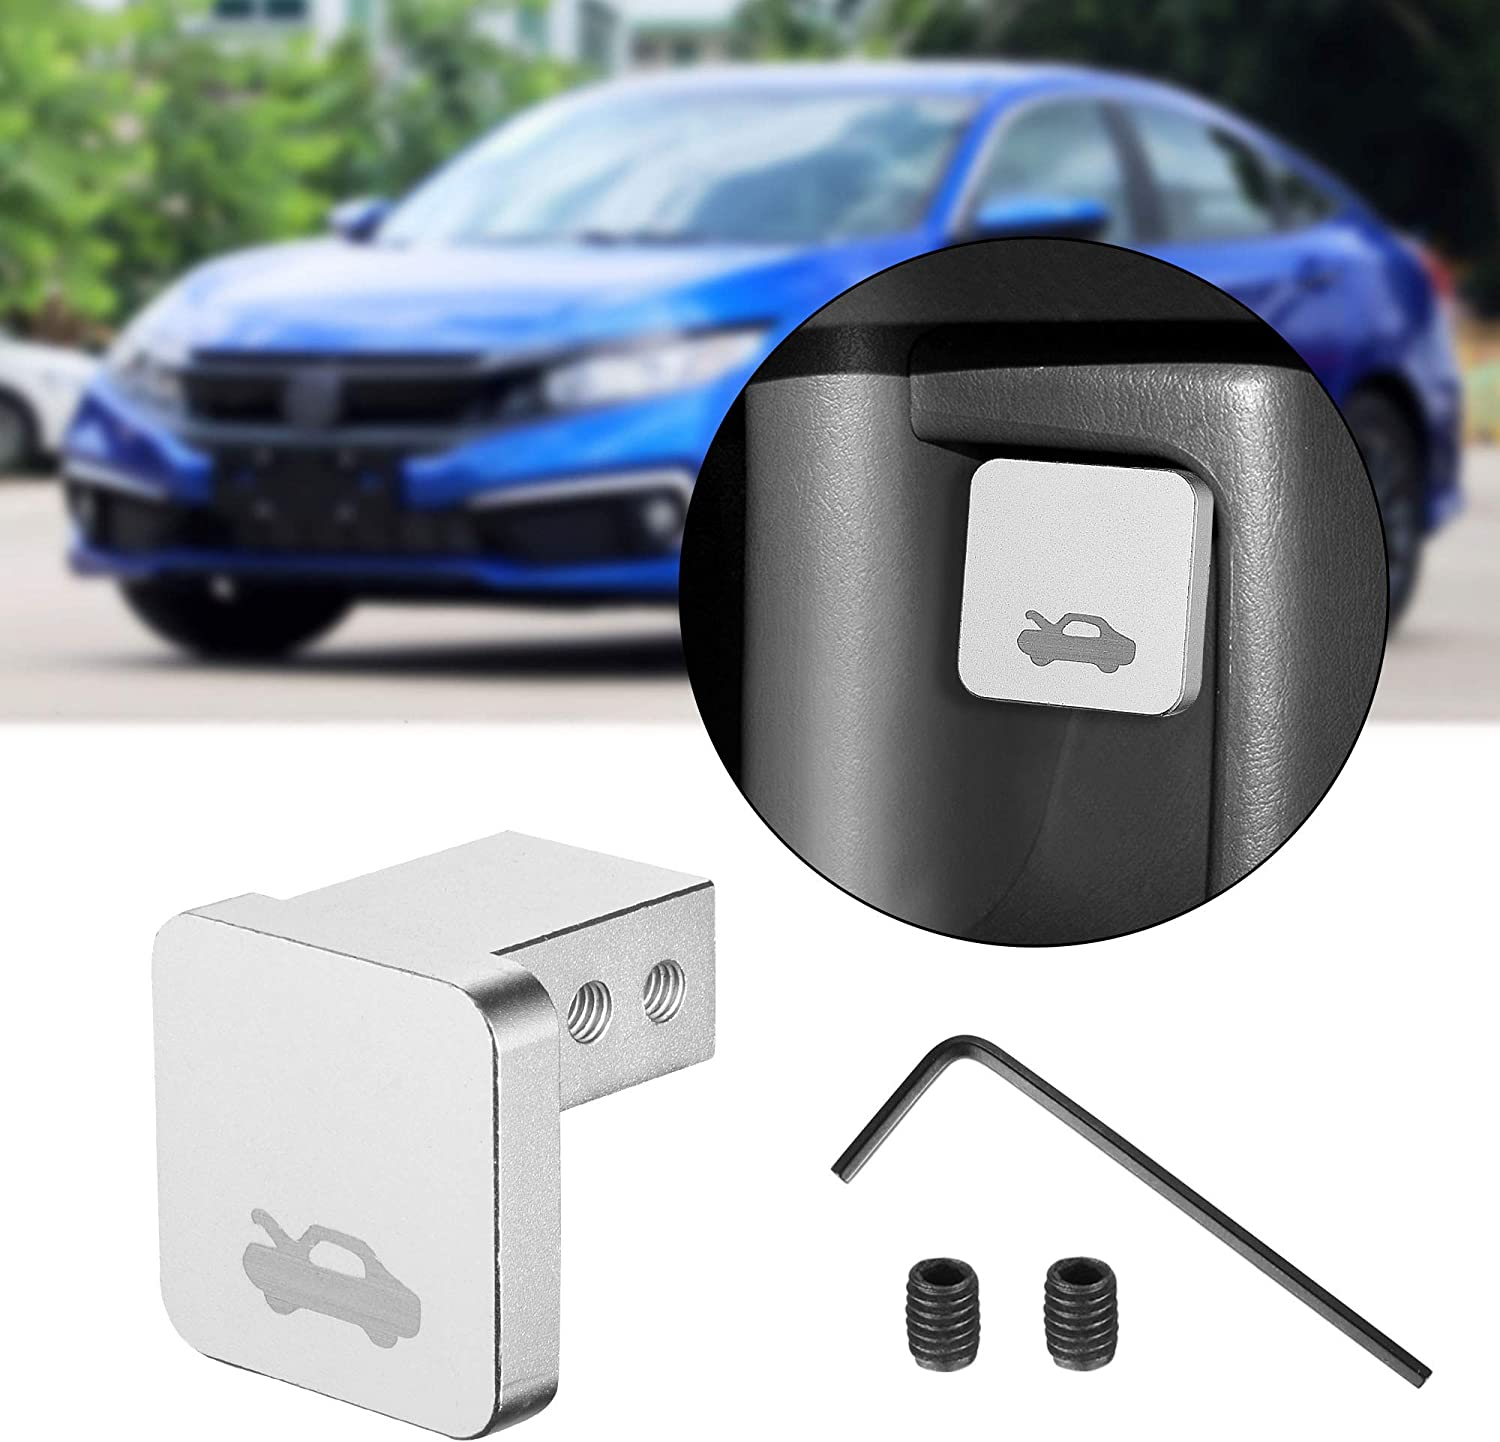 for Ridgeline 2006-2014 Aluminum Release Cable Replacement TOMALL Hood Release Latch Handle Repair Kit Compatible with Honda Civic 1996-2011 for CR-V 1997-2006 Black for Element 2003-2011